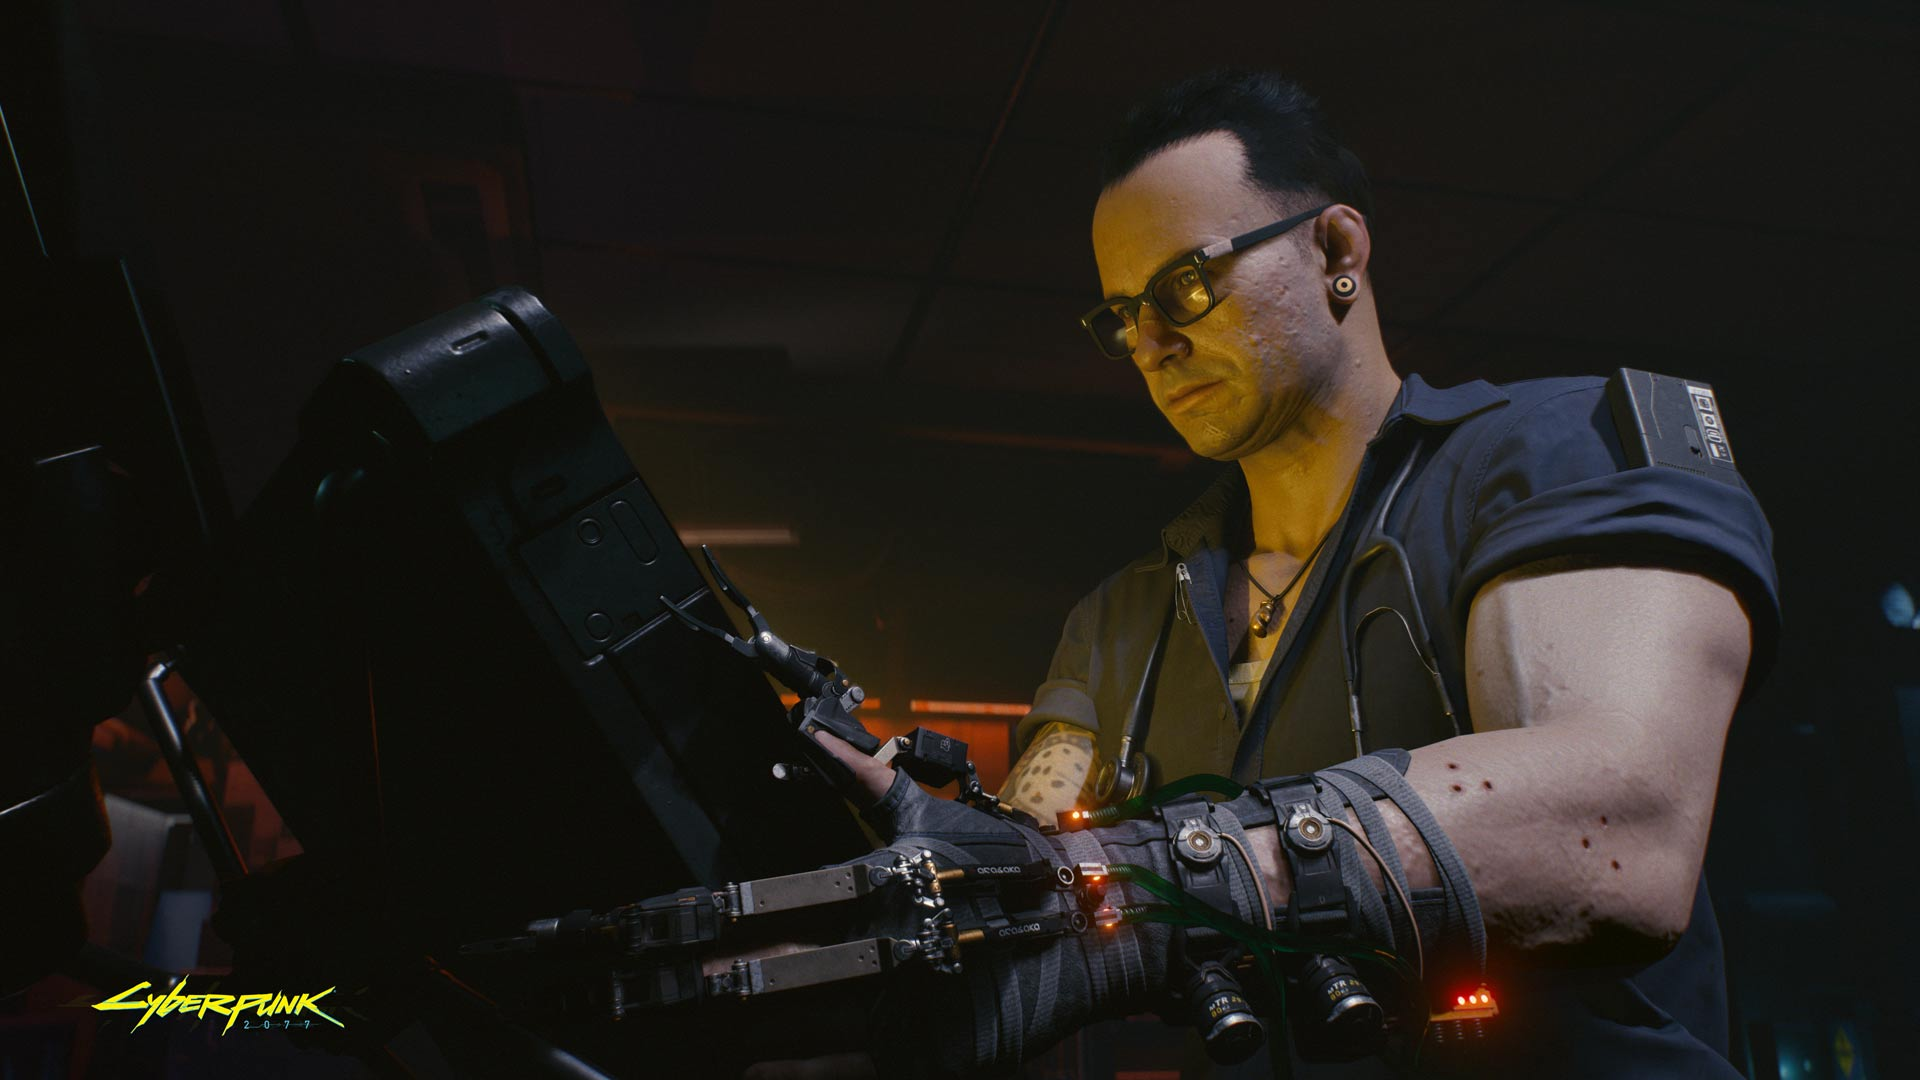 Cyberpunk 2077 won't be hands-on at E3